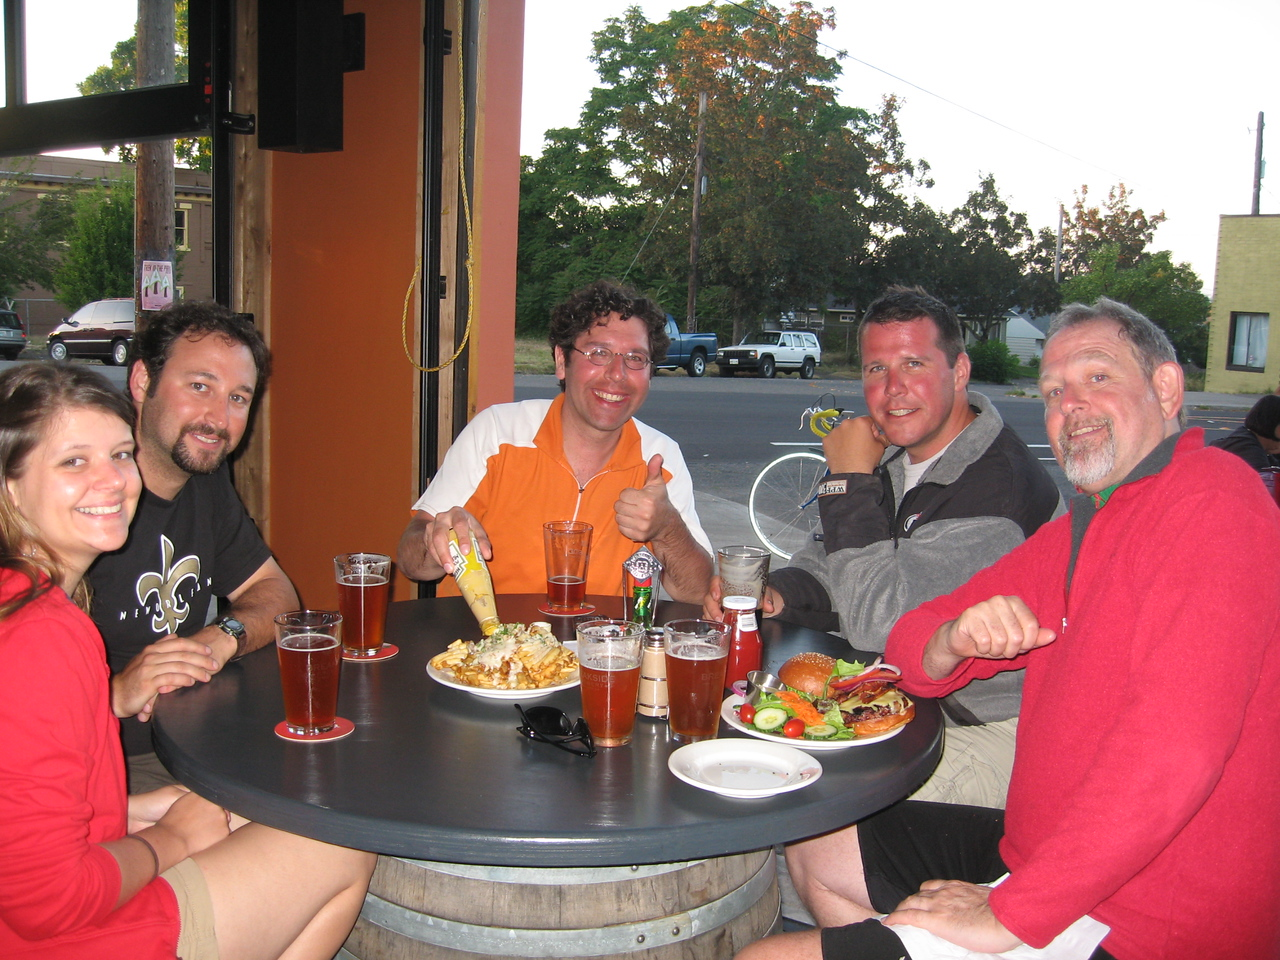 Yay - beer, food and good company! Katie, Brett, Bob, Tom (Bob's brother) and Rob at a brewpub not far from Brett's house in Portland.